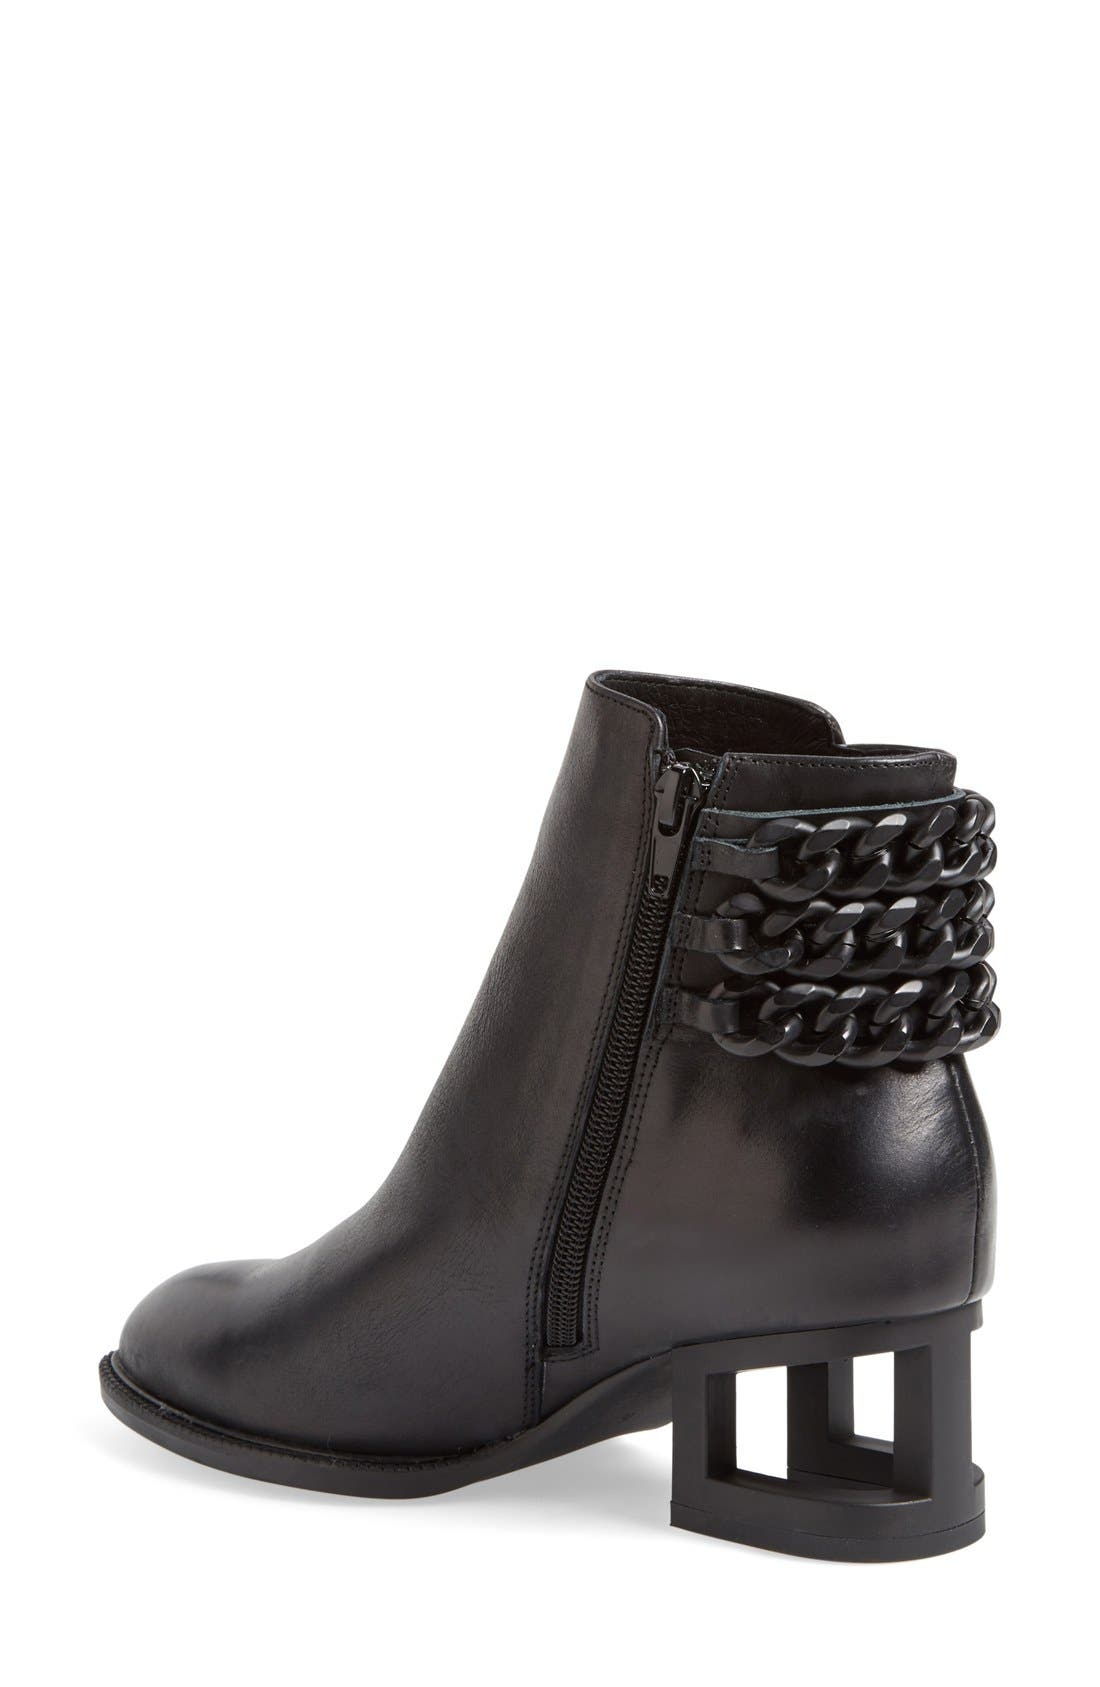 Alternate Image 2  - Jeffrey Campbell 'Benicio' Ankle Boot (Women)